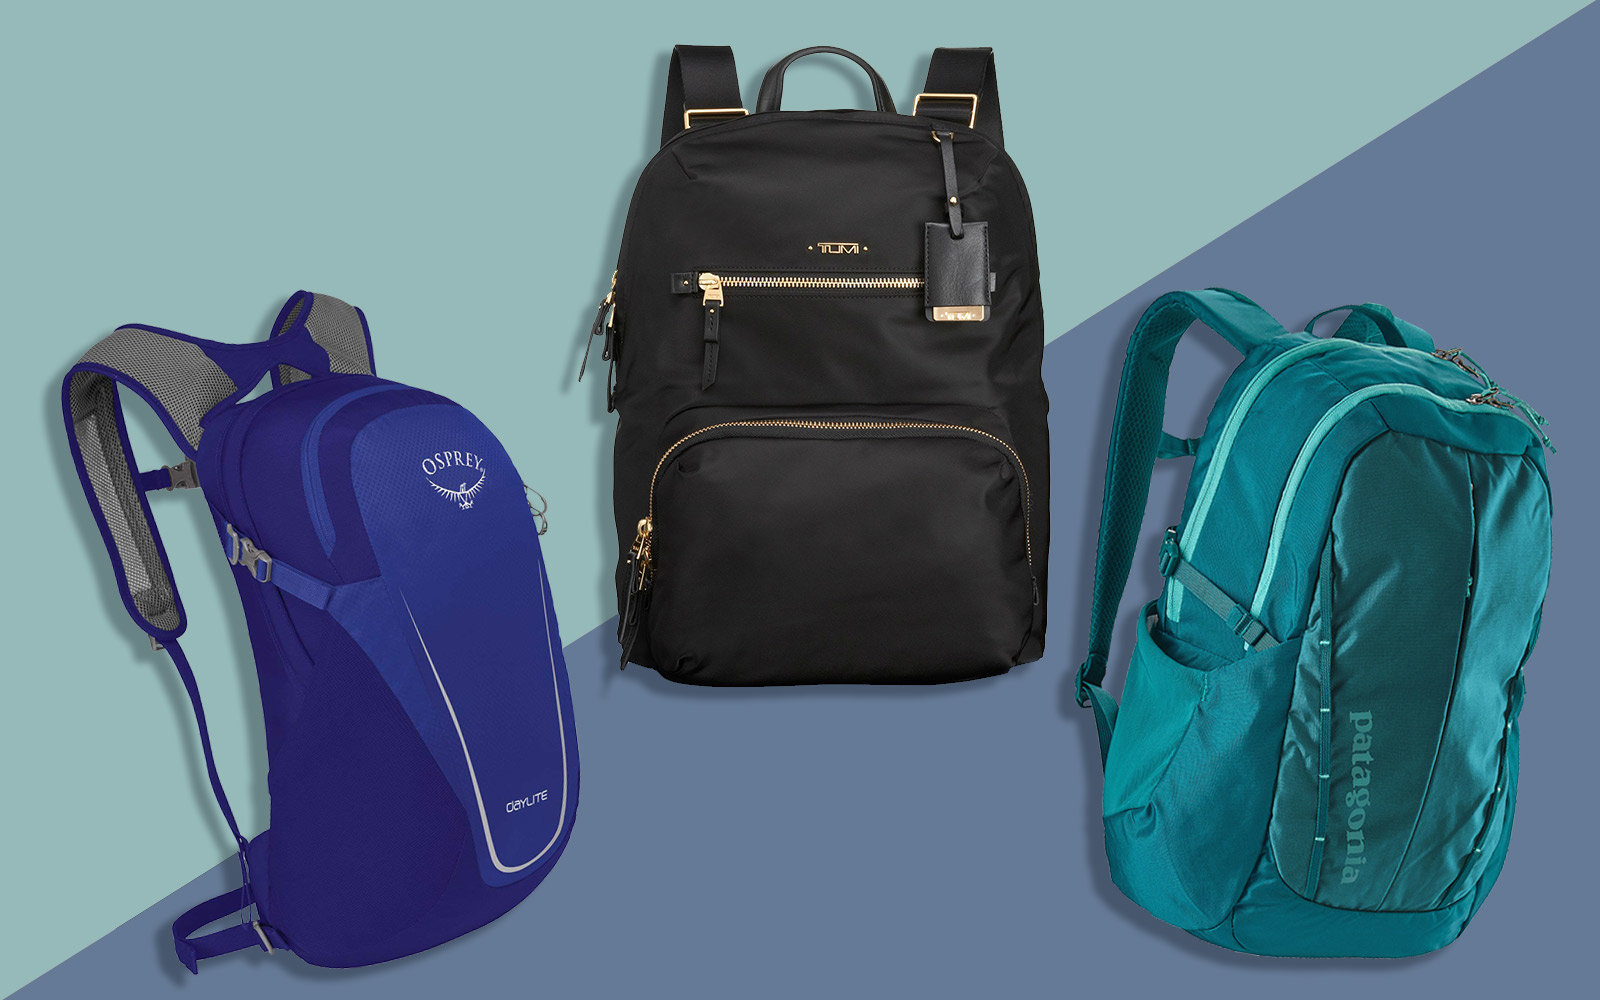 59ae6bdc58e4 The Best Daypacks for Travel in 2019